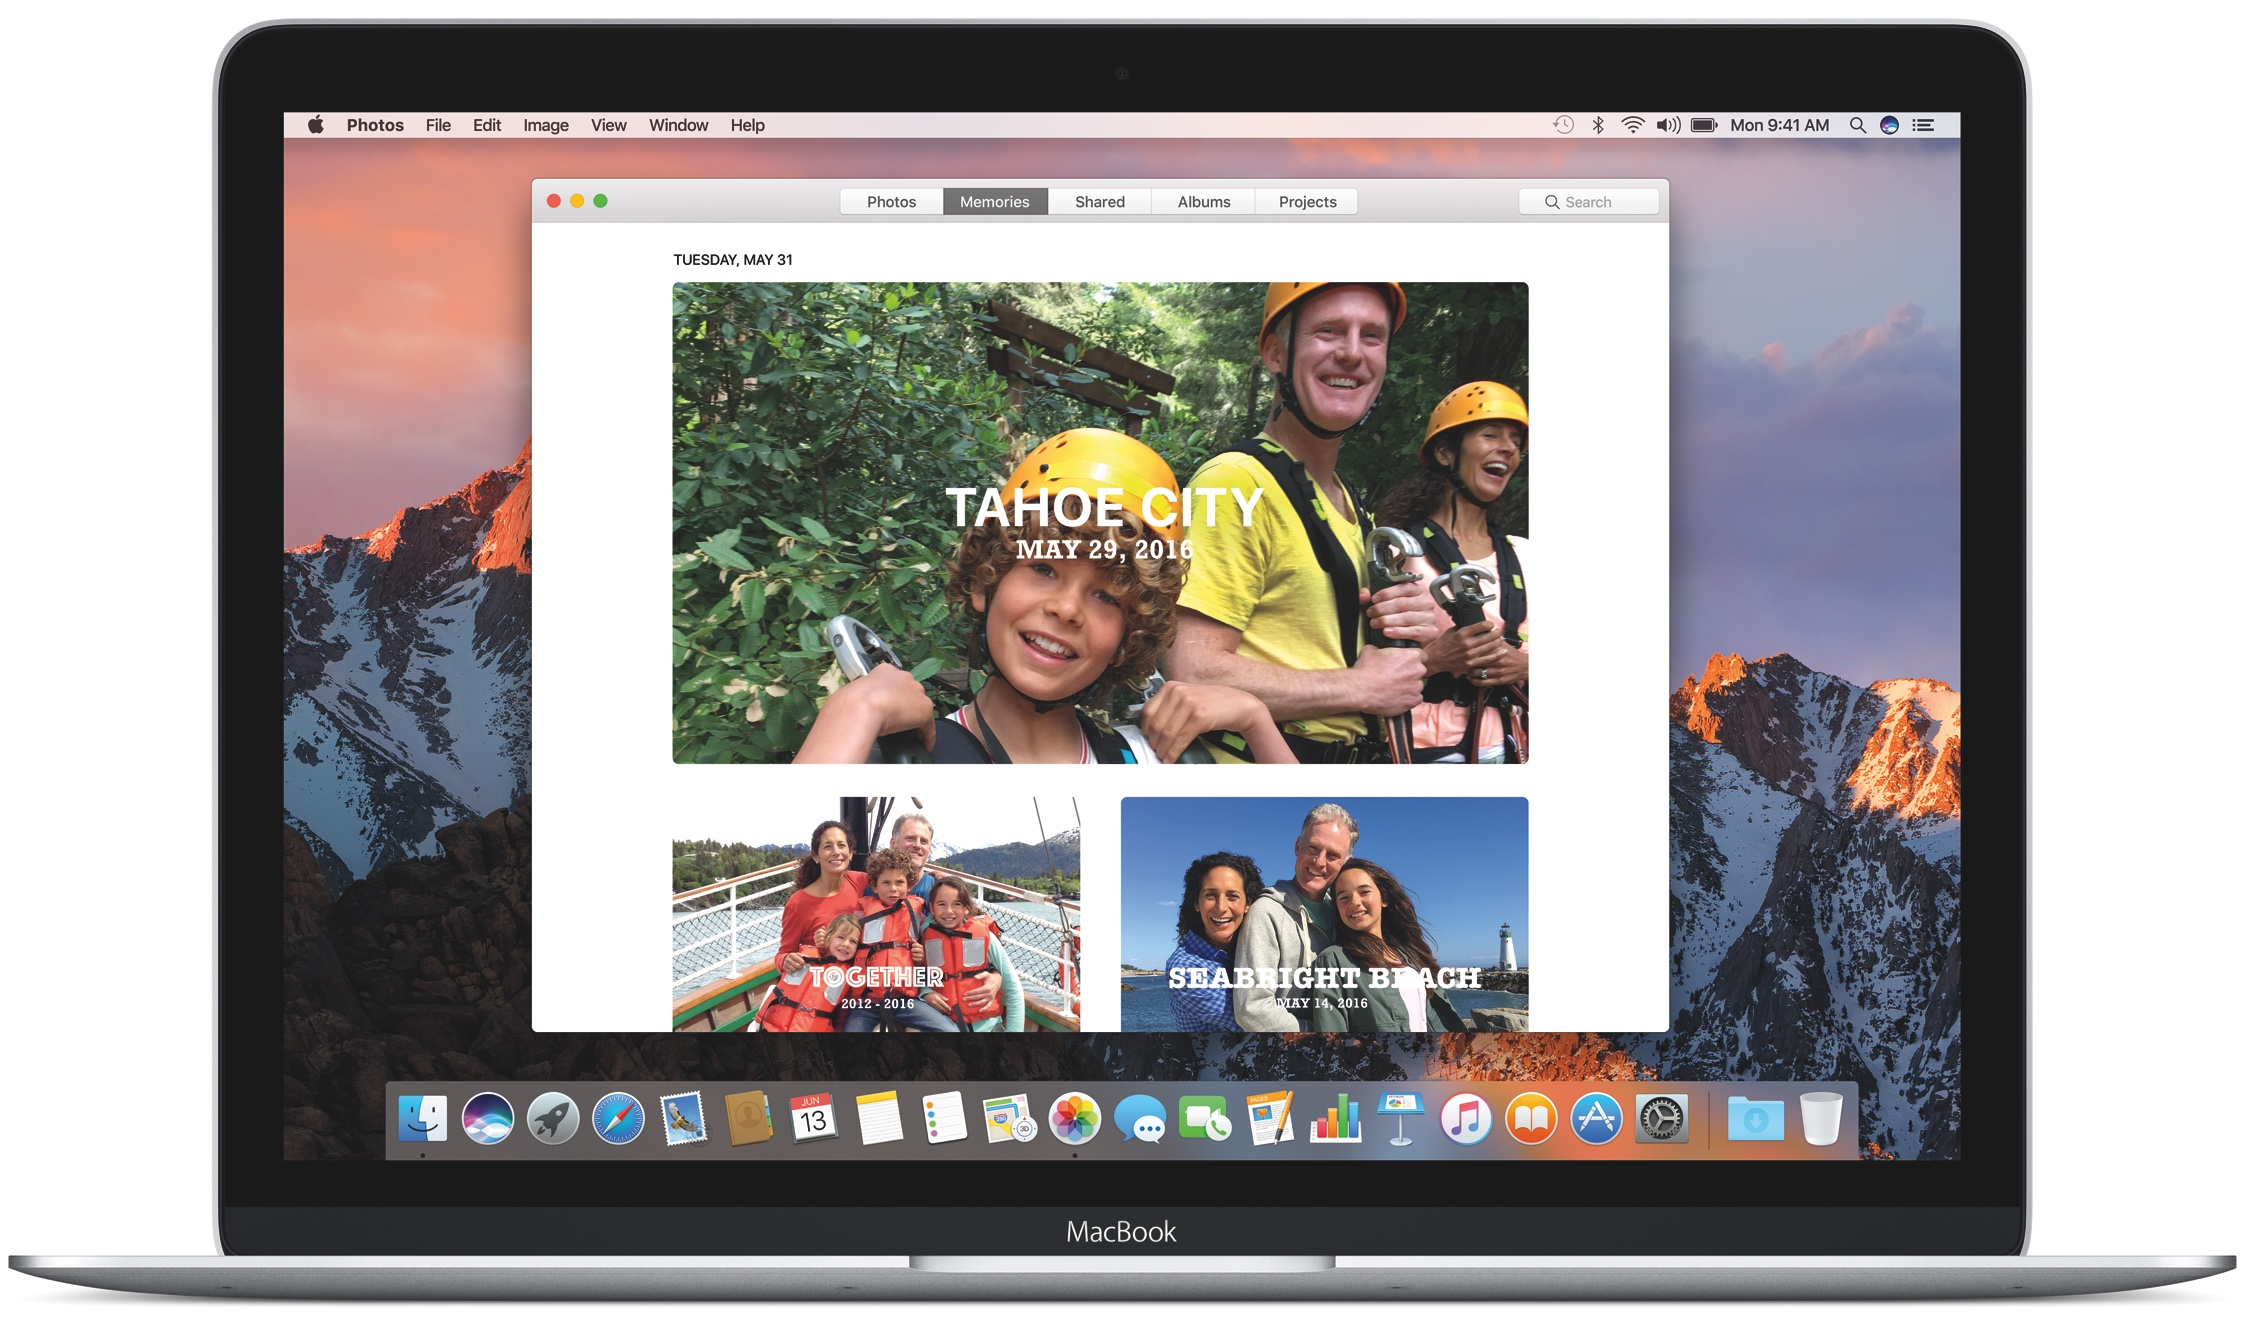 macOS Sierra desktop Photos Memories image 001